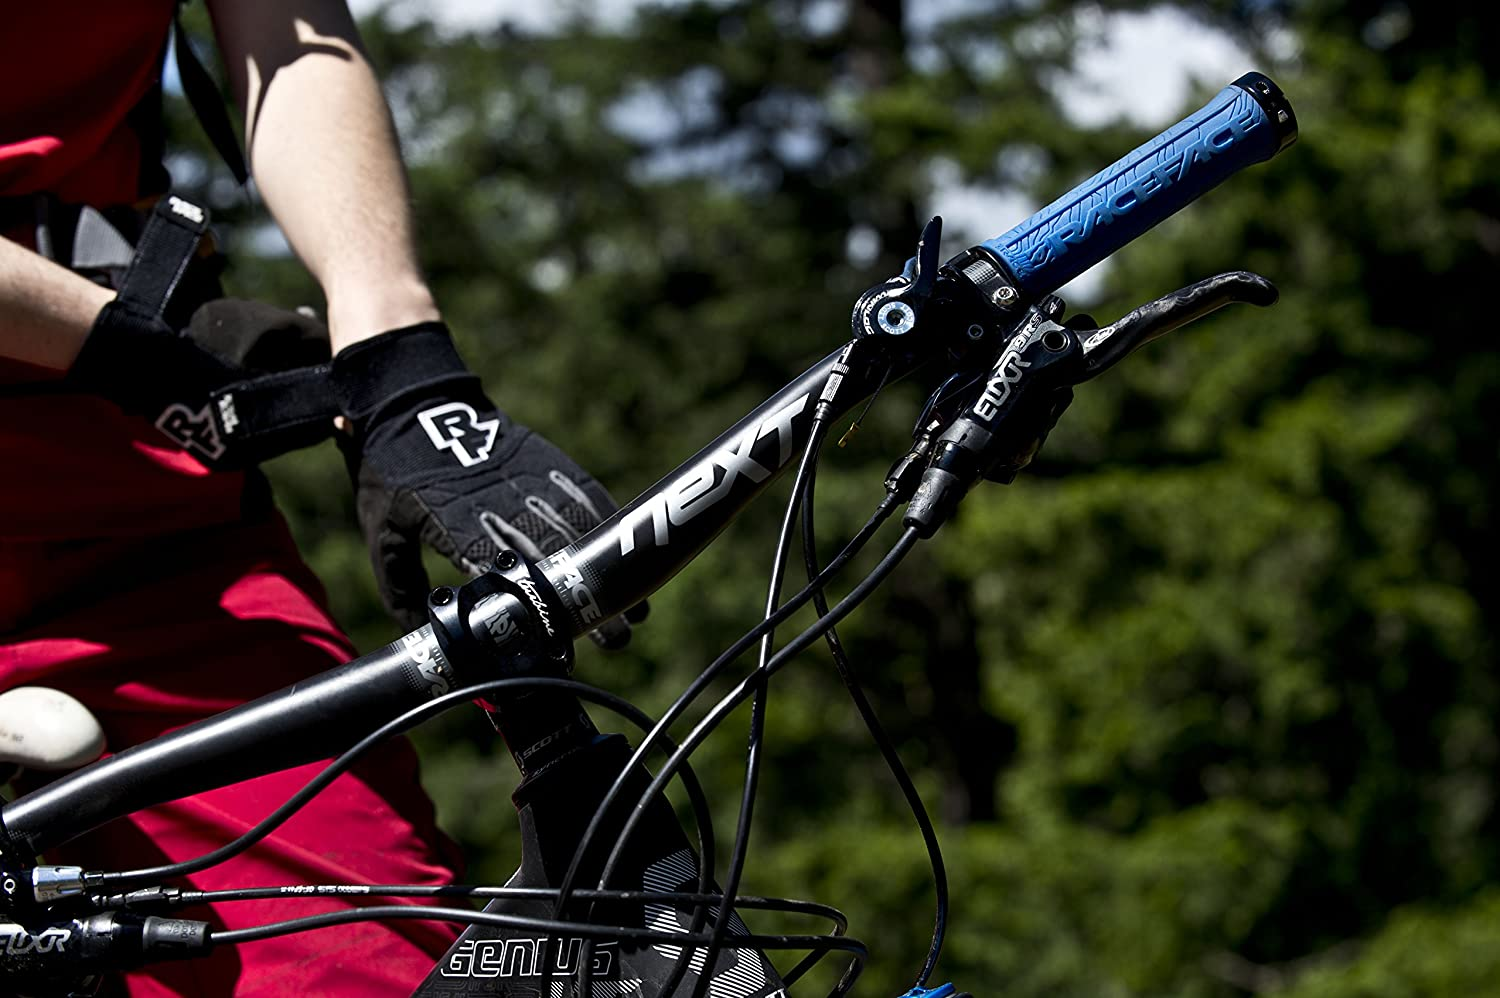 To shorten mountain bike grips, cut them or slide brakes and shifters inwards.